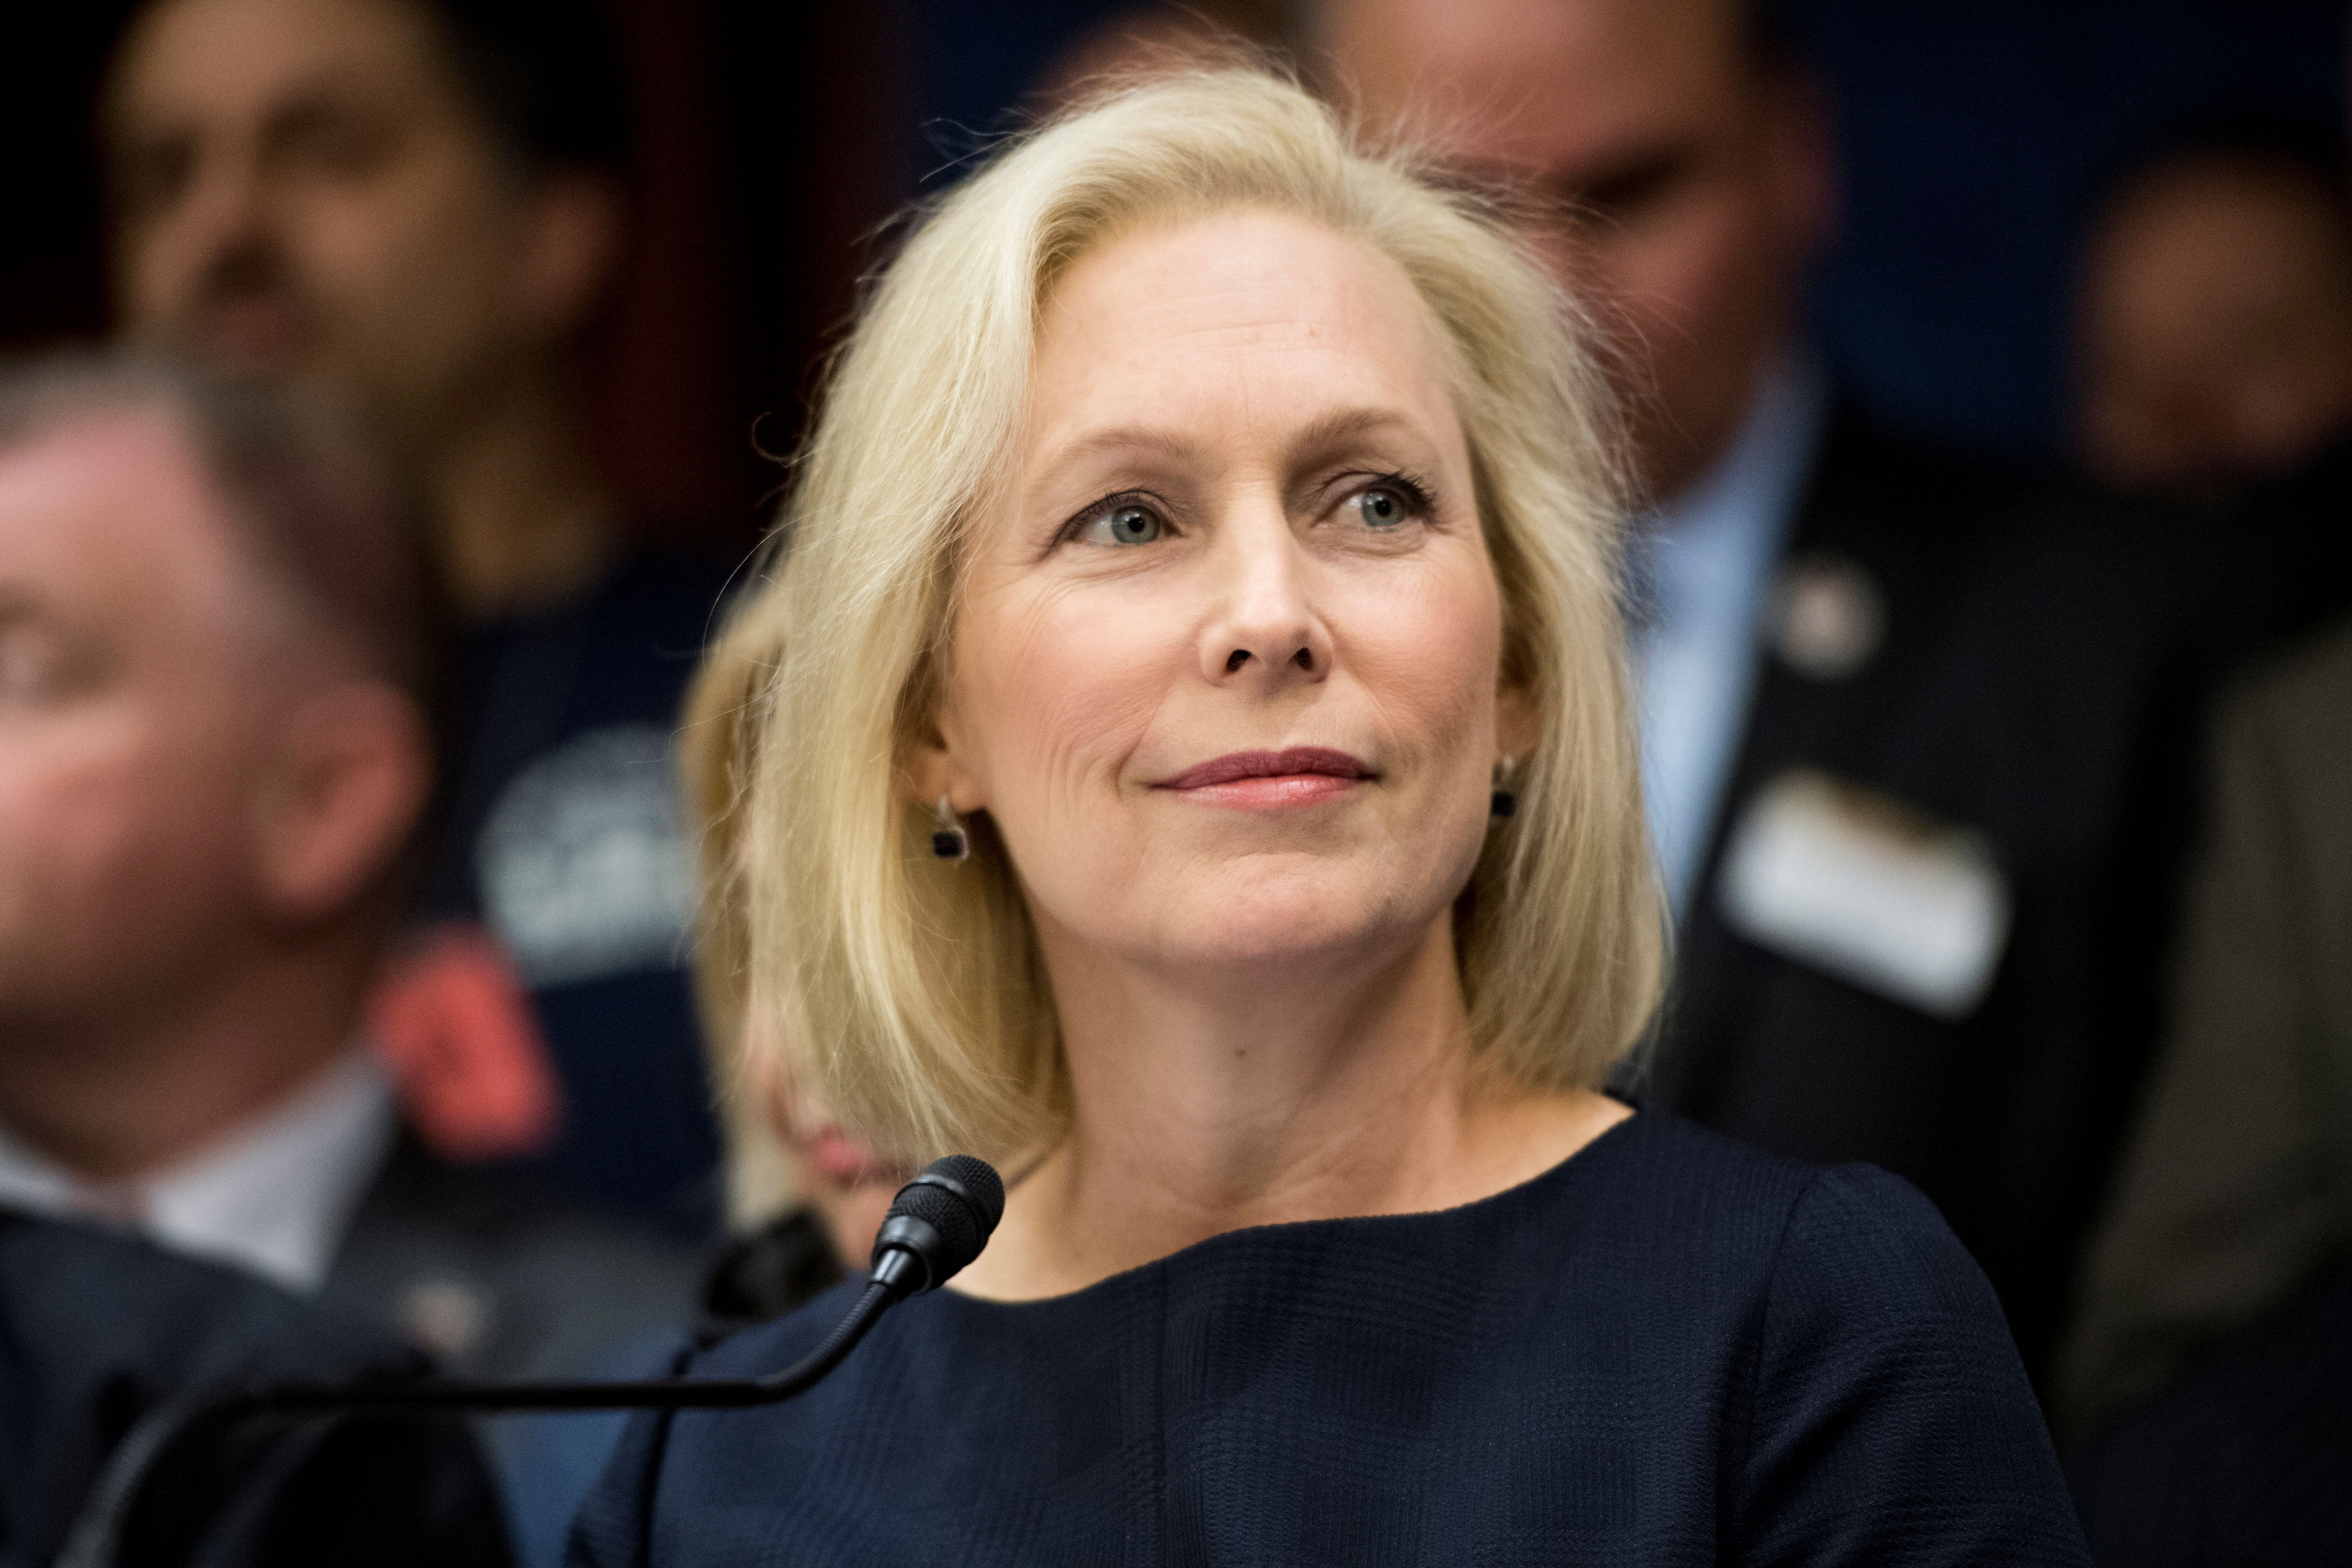 UNITED STATES - FEBRUARY 25: Sen. Kirsten Gillibrand, D-N.Y., speaks during the news conference with 9/11 first responders, survivors and their families to urge passage of the  Never Forget the Heroes: Permanent Authorization of the September 11th Victim Compensation Fund Act on Monday, Feb. 25, 2019. (Photo By Bill Clark/CQ Roll Call)